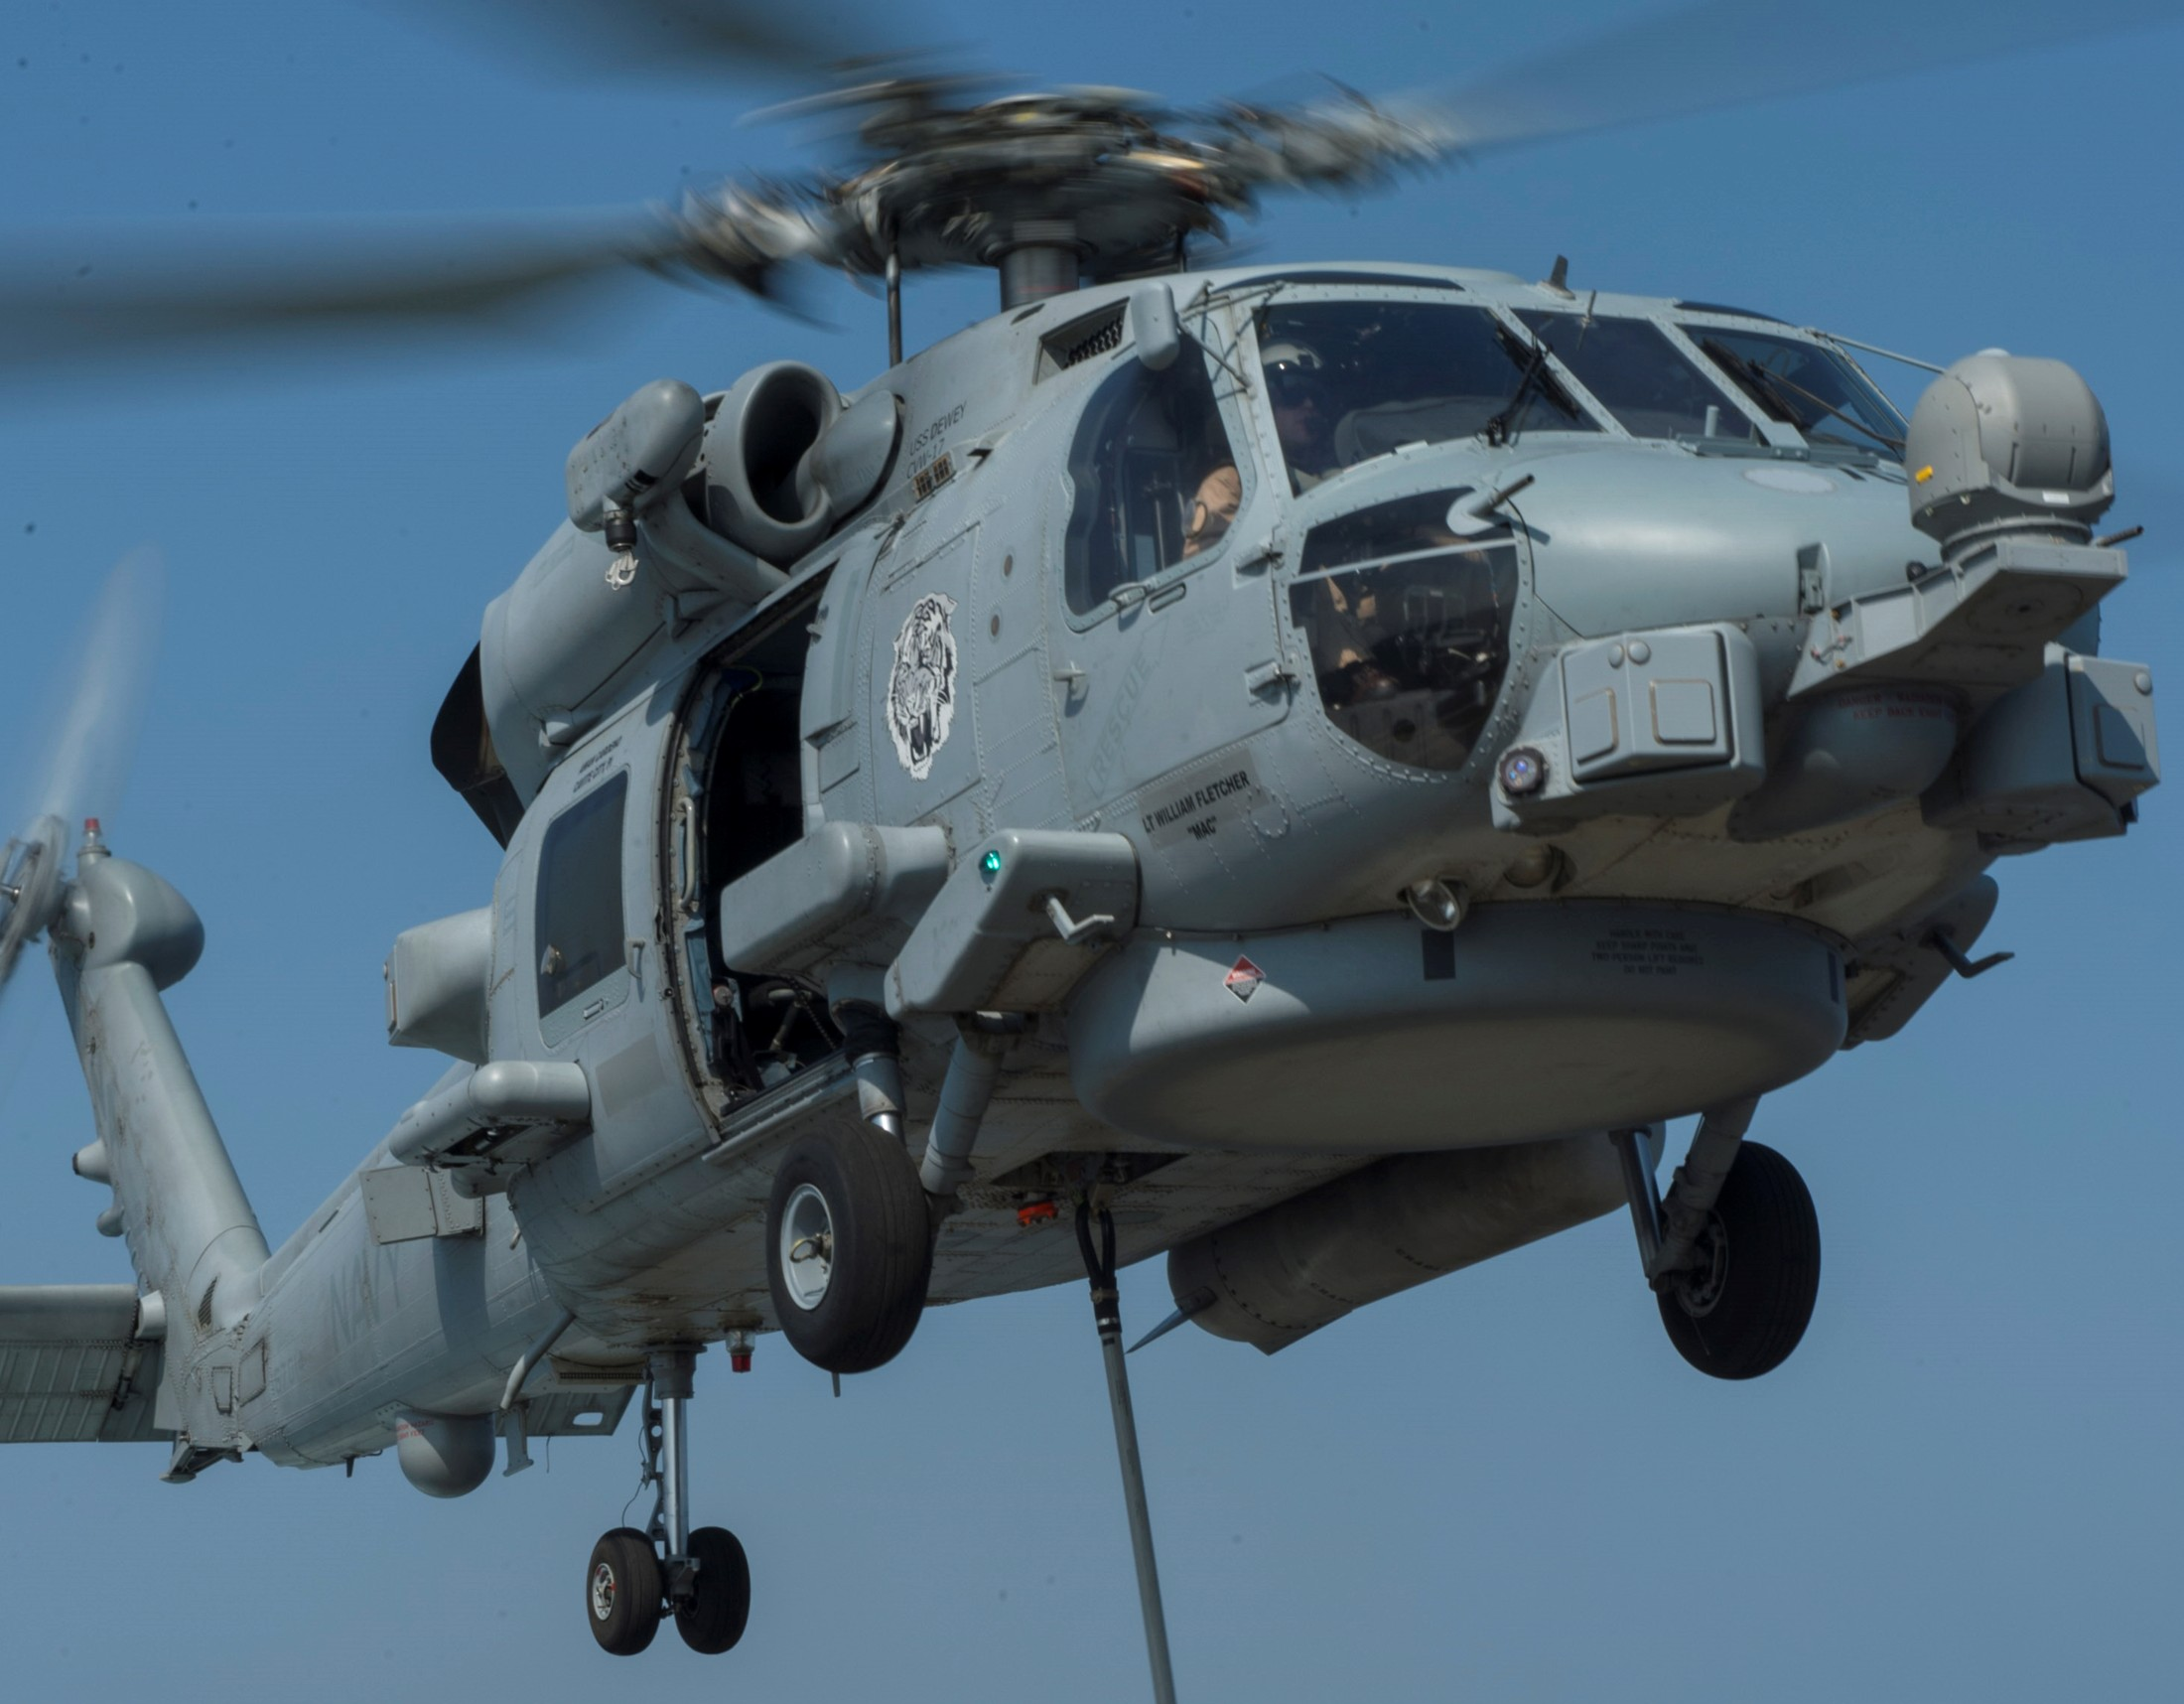 HSM-73 Battlecats Helicopter Maritime Strike Squadron US Navy